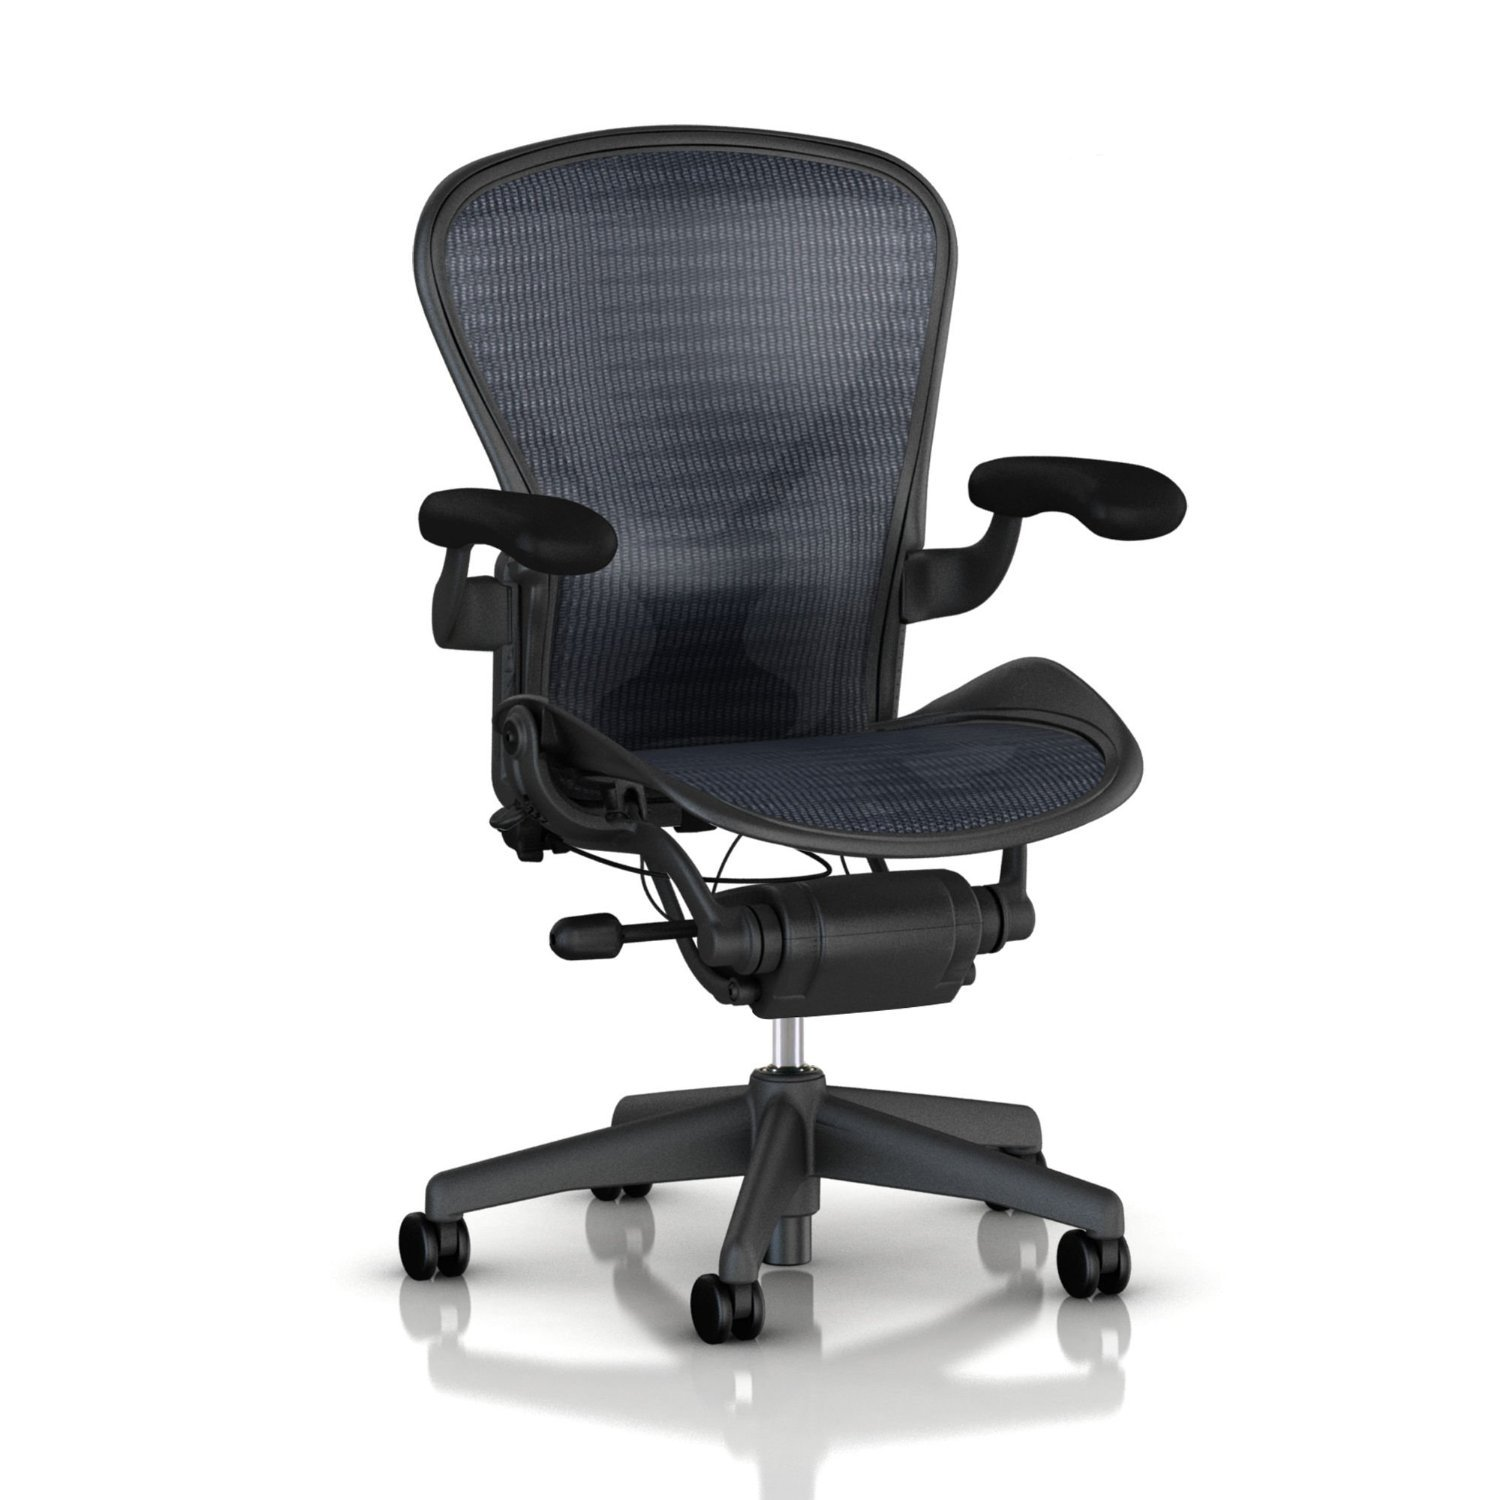 oa3-table__image  sc 1 st  Omnicore & Top 16 Best Ergonomic Office Chairs 2018 + Editors Pick